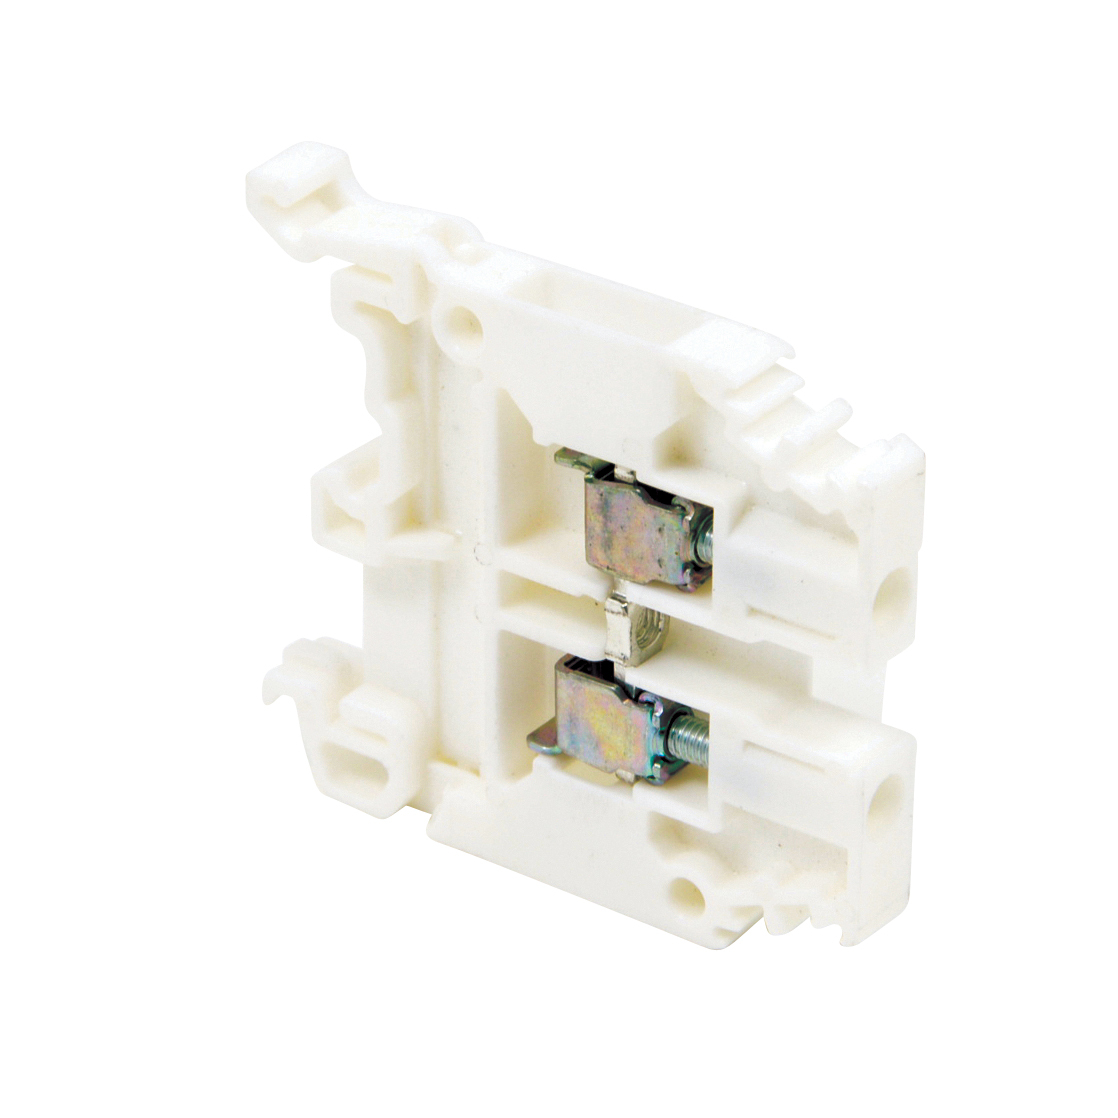 ABB 010505120 White, feed through terminal block with 6 mm spacing, 30 Amp rated UL current with screw clamp connection that accepts 22-10 AWG UL wire range